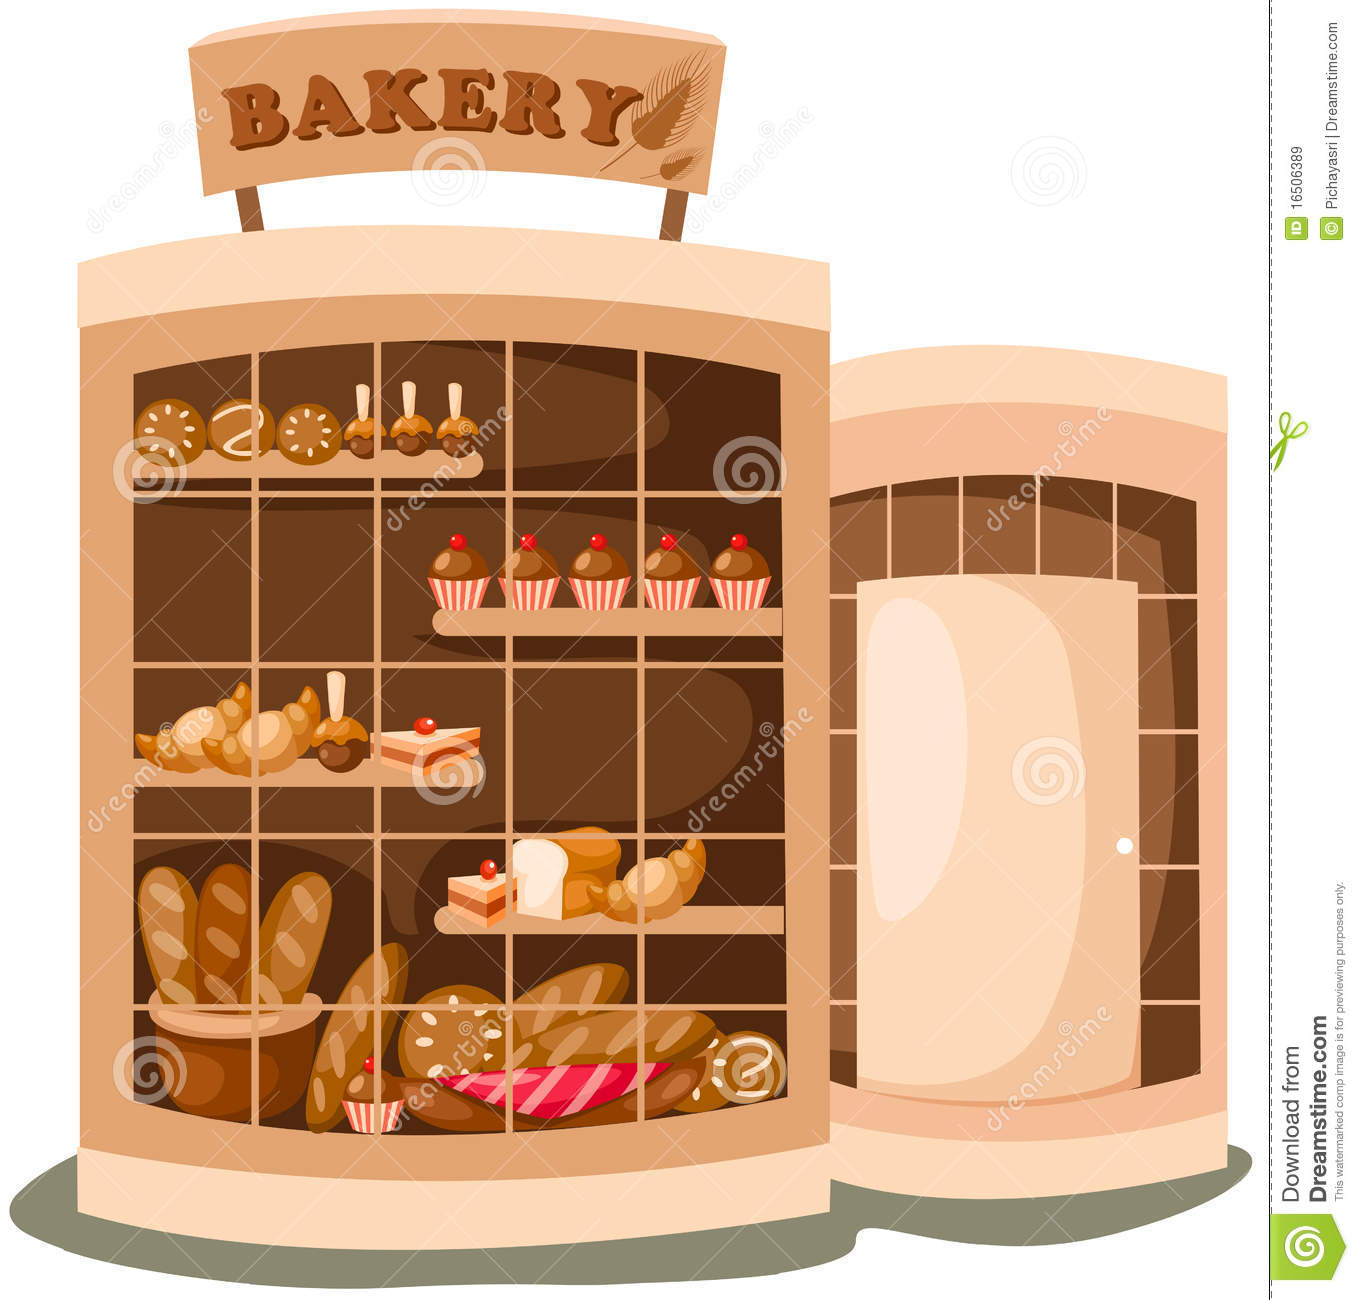 Bakery building clipart 6 » Clipart Station.